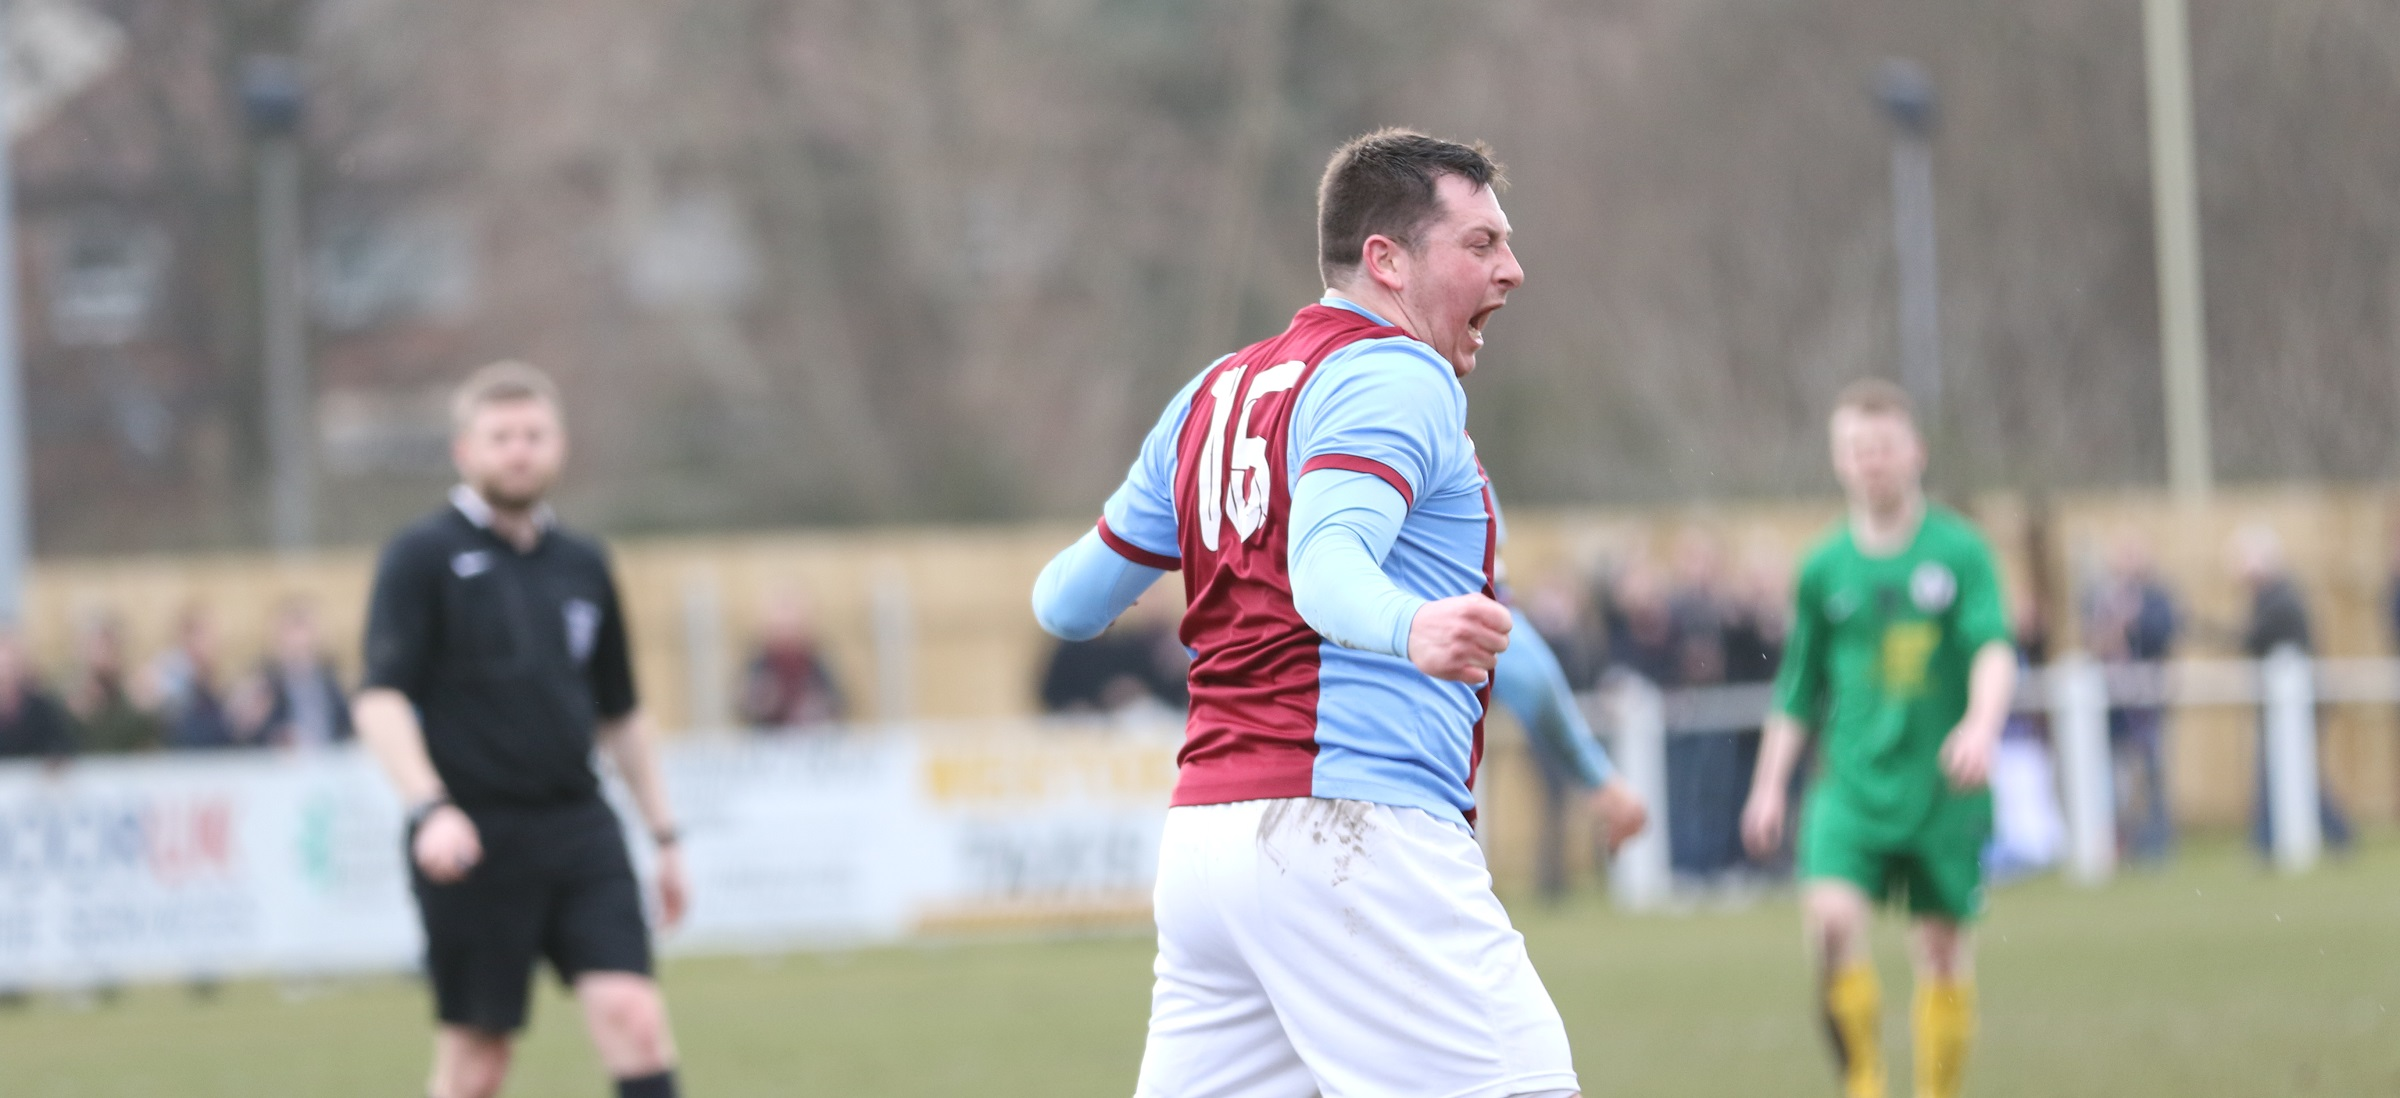 VIDEO: Byrne – I had a feeling it would be my day against Esh Winning